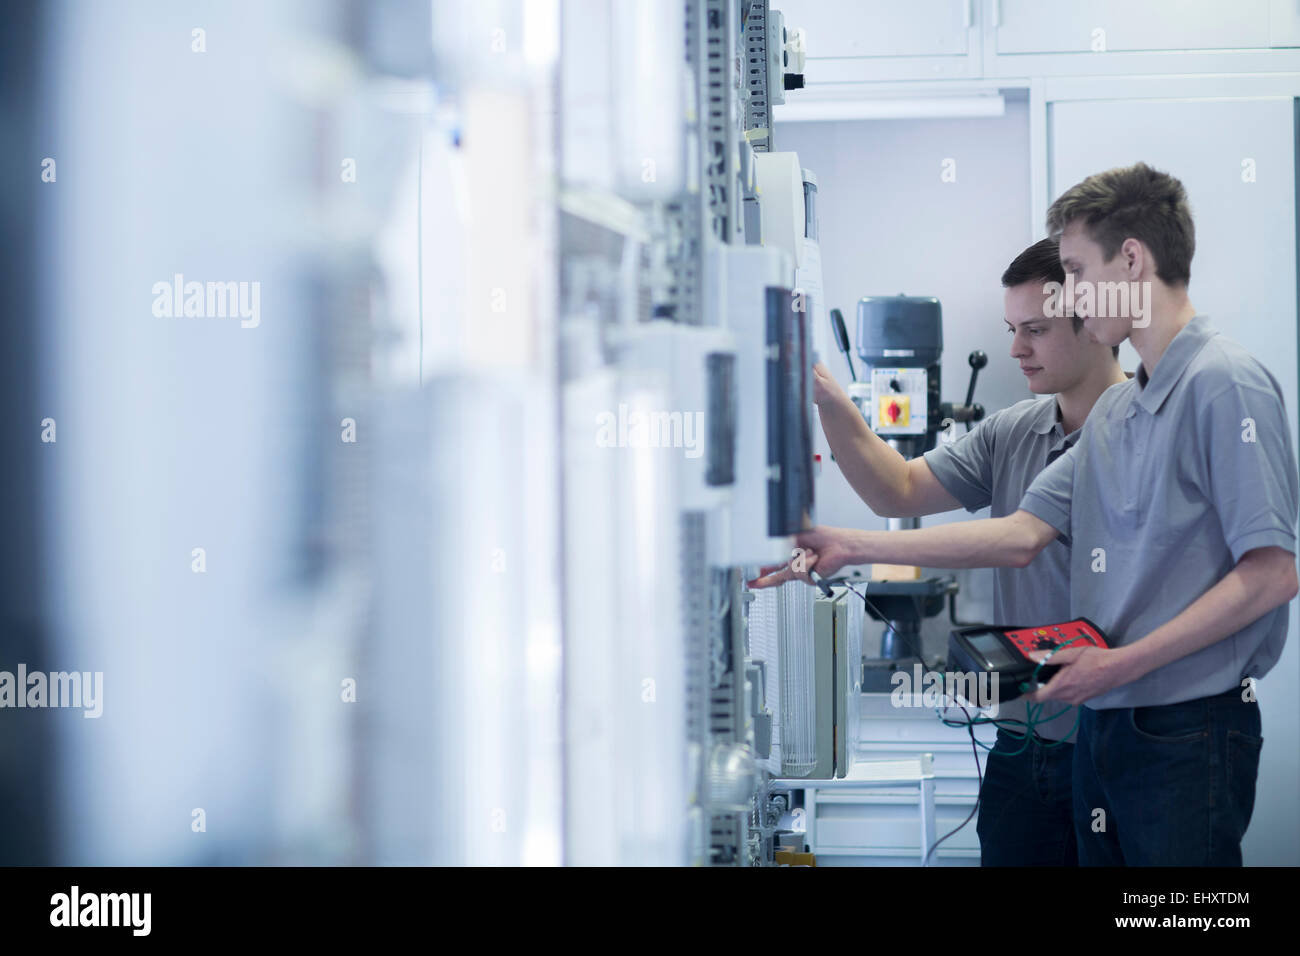 Students at electronics vocational school - Stock Image